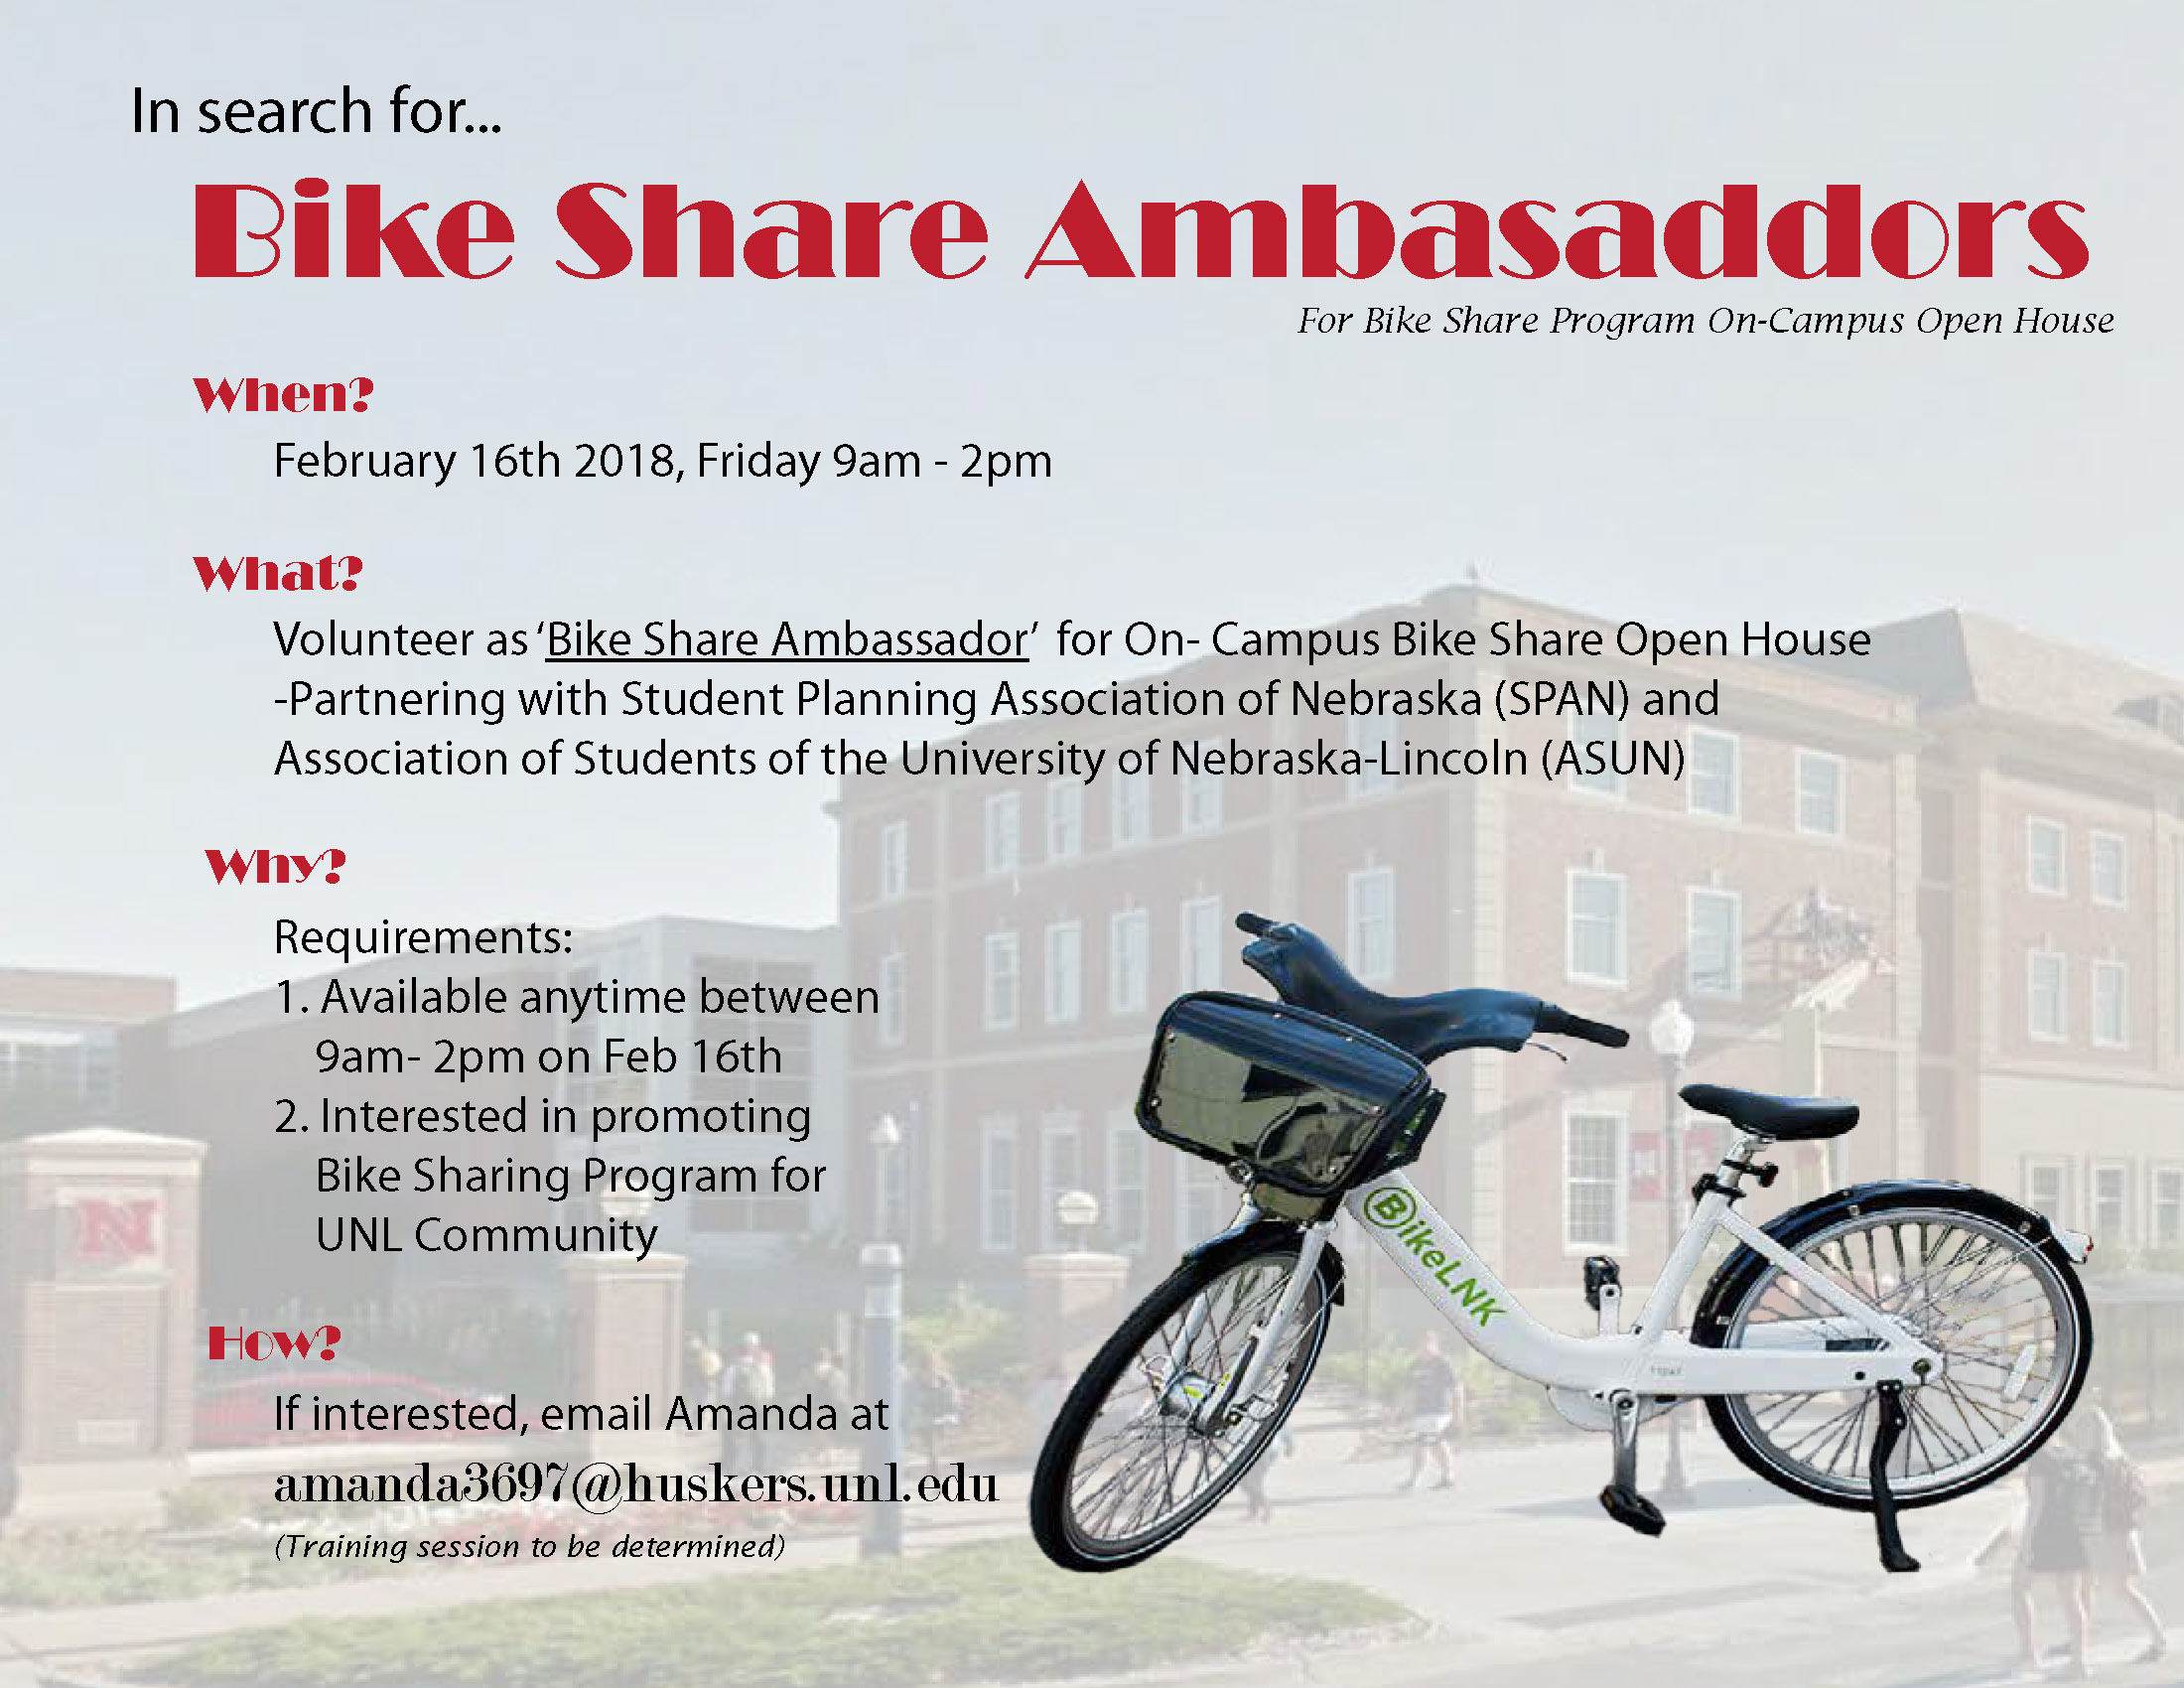 Volunteering Opportunity as Bike Share Ambassadors